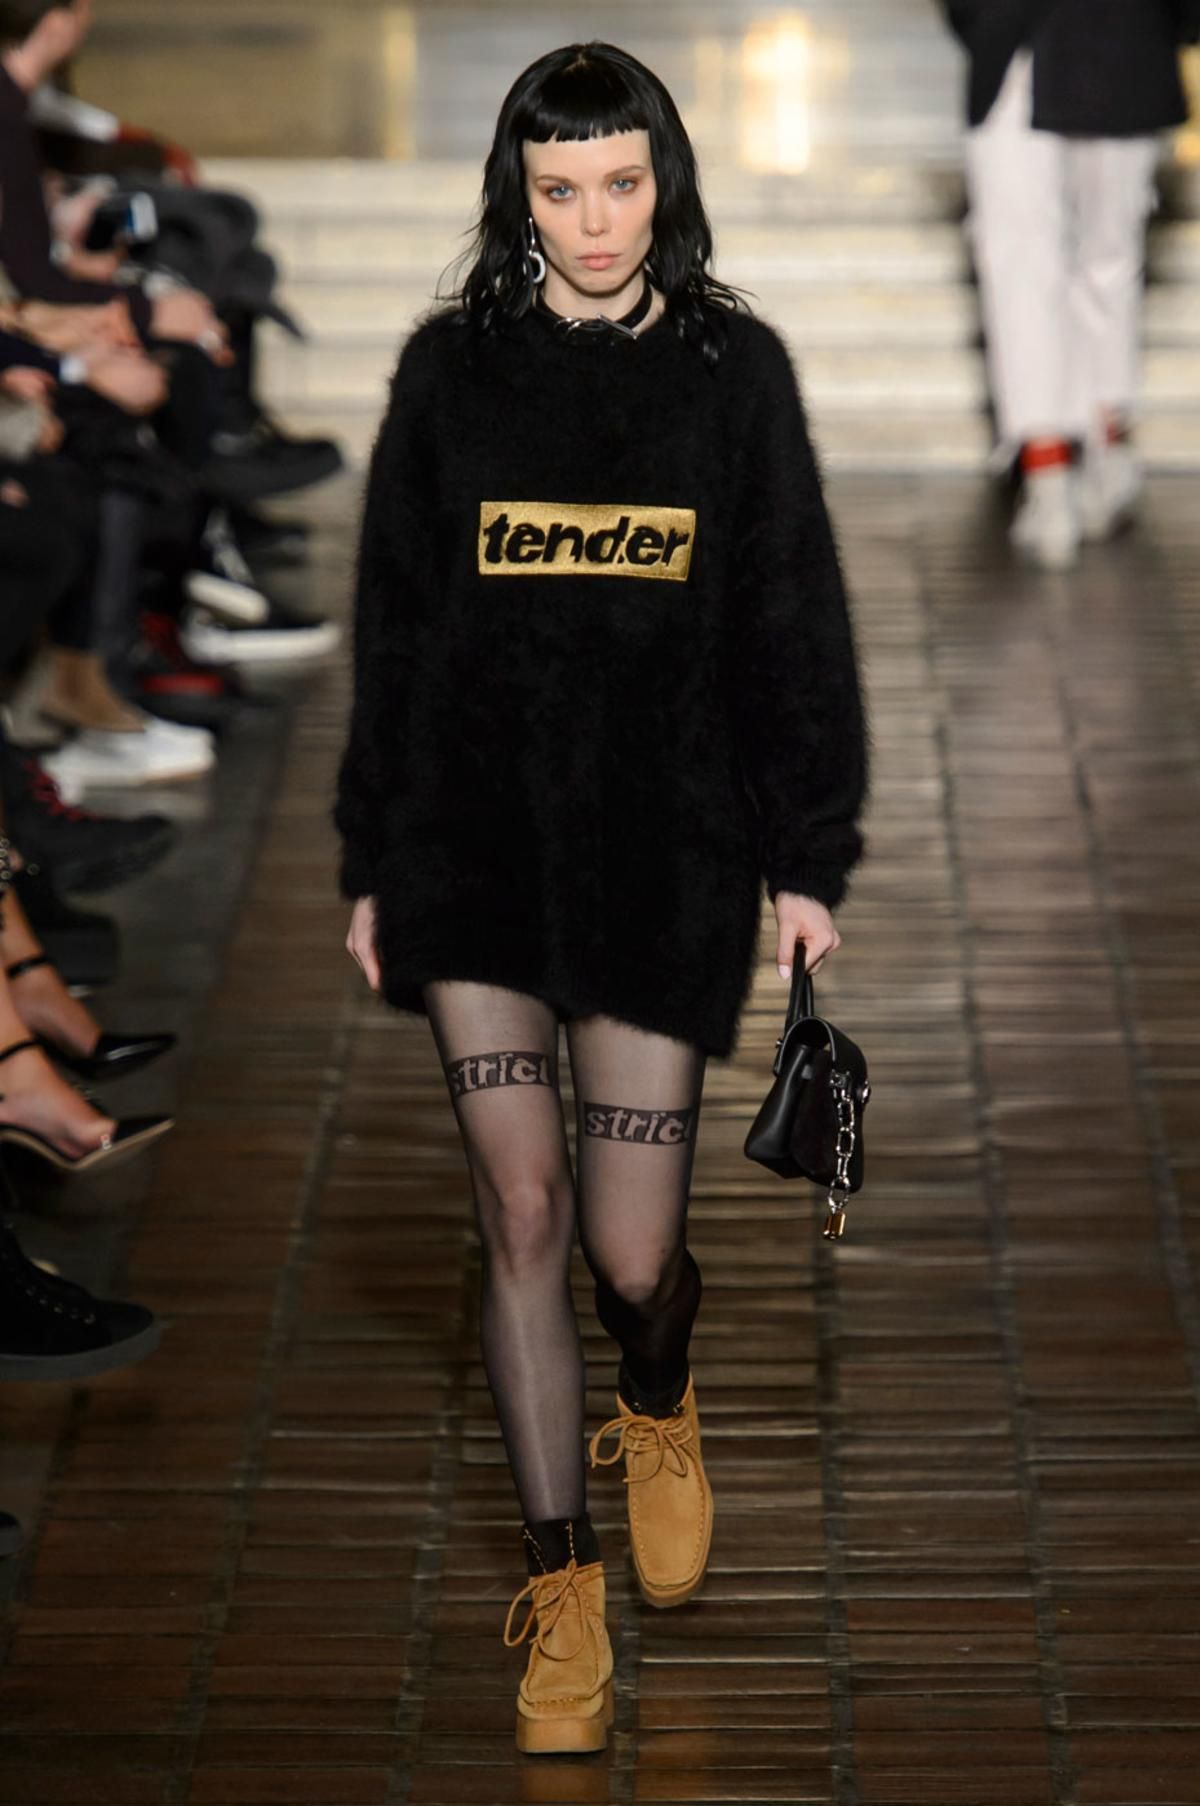 A look from the Alexander Wang fall 2016 show. Photo: Imaxtree.